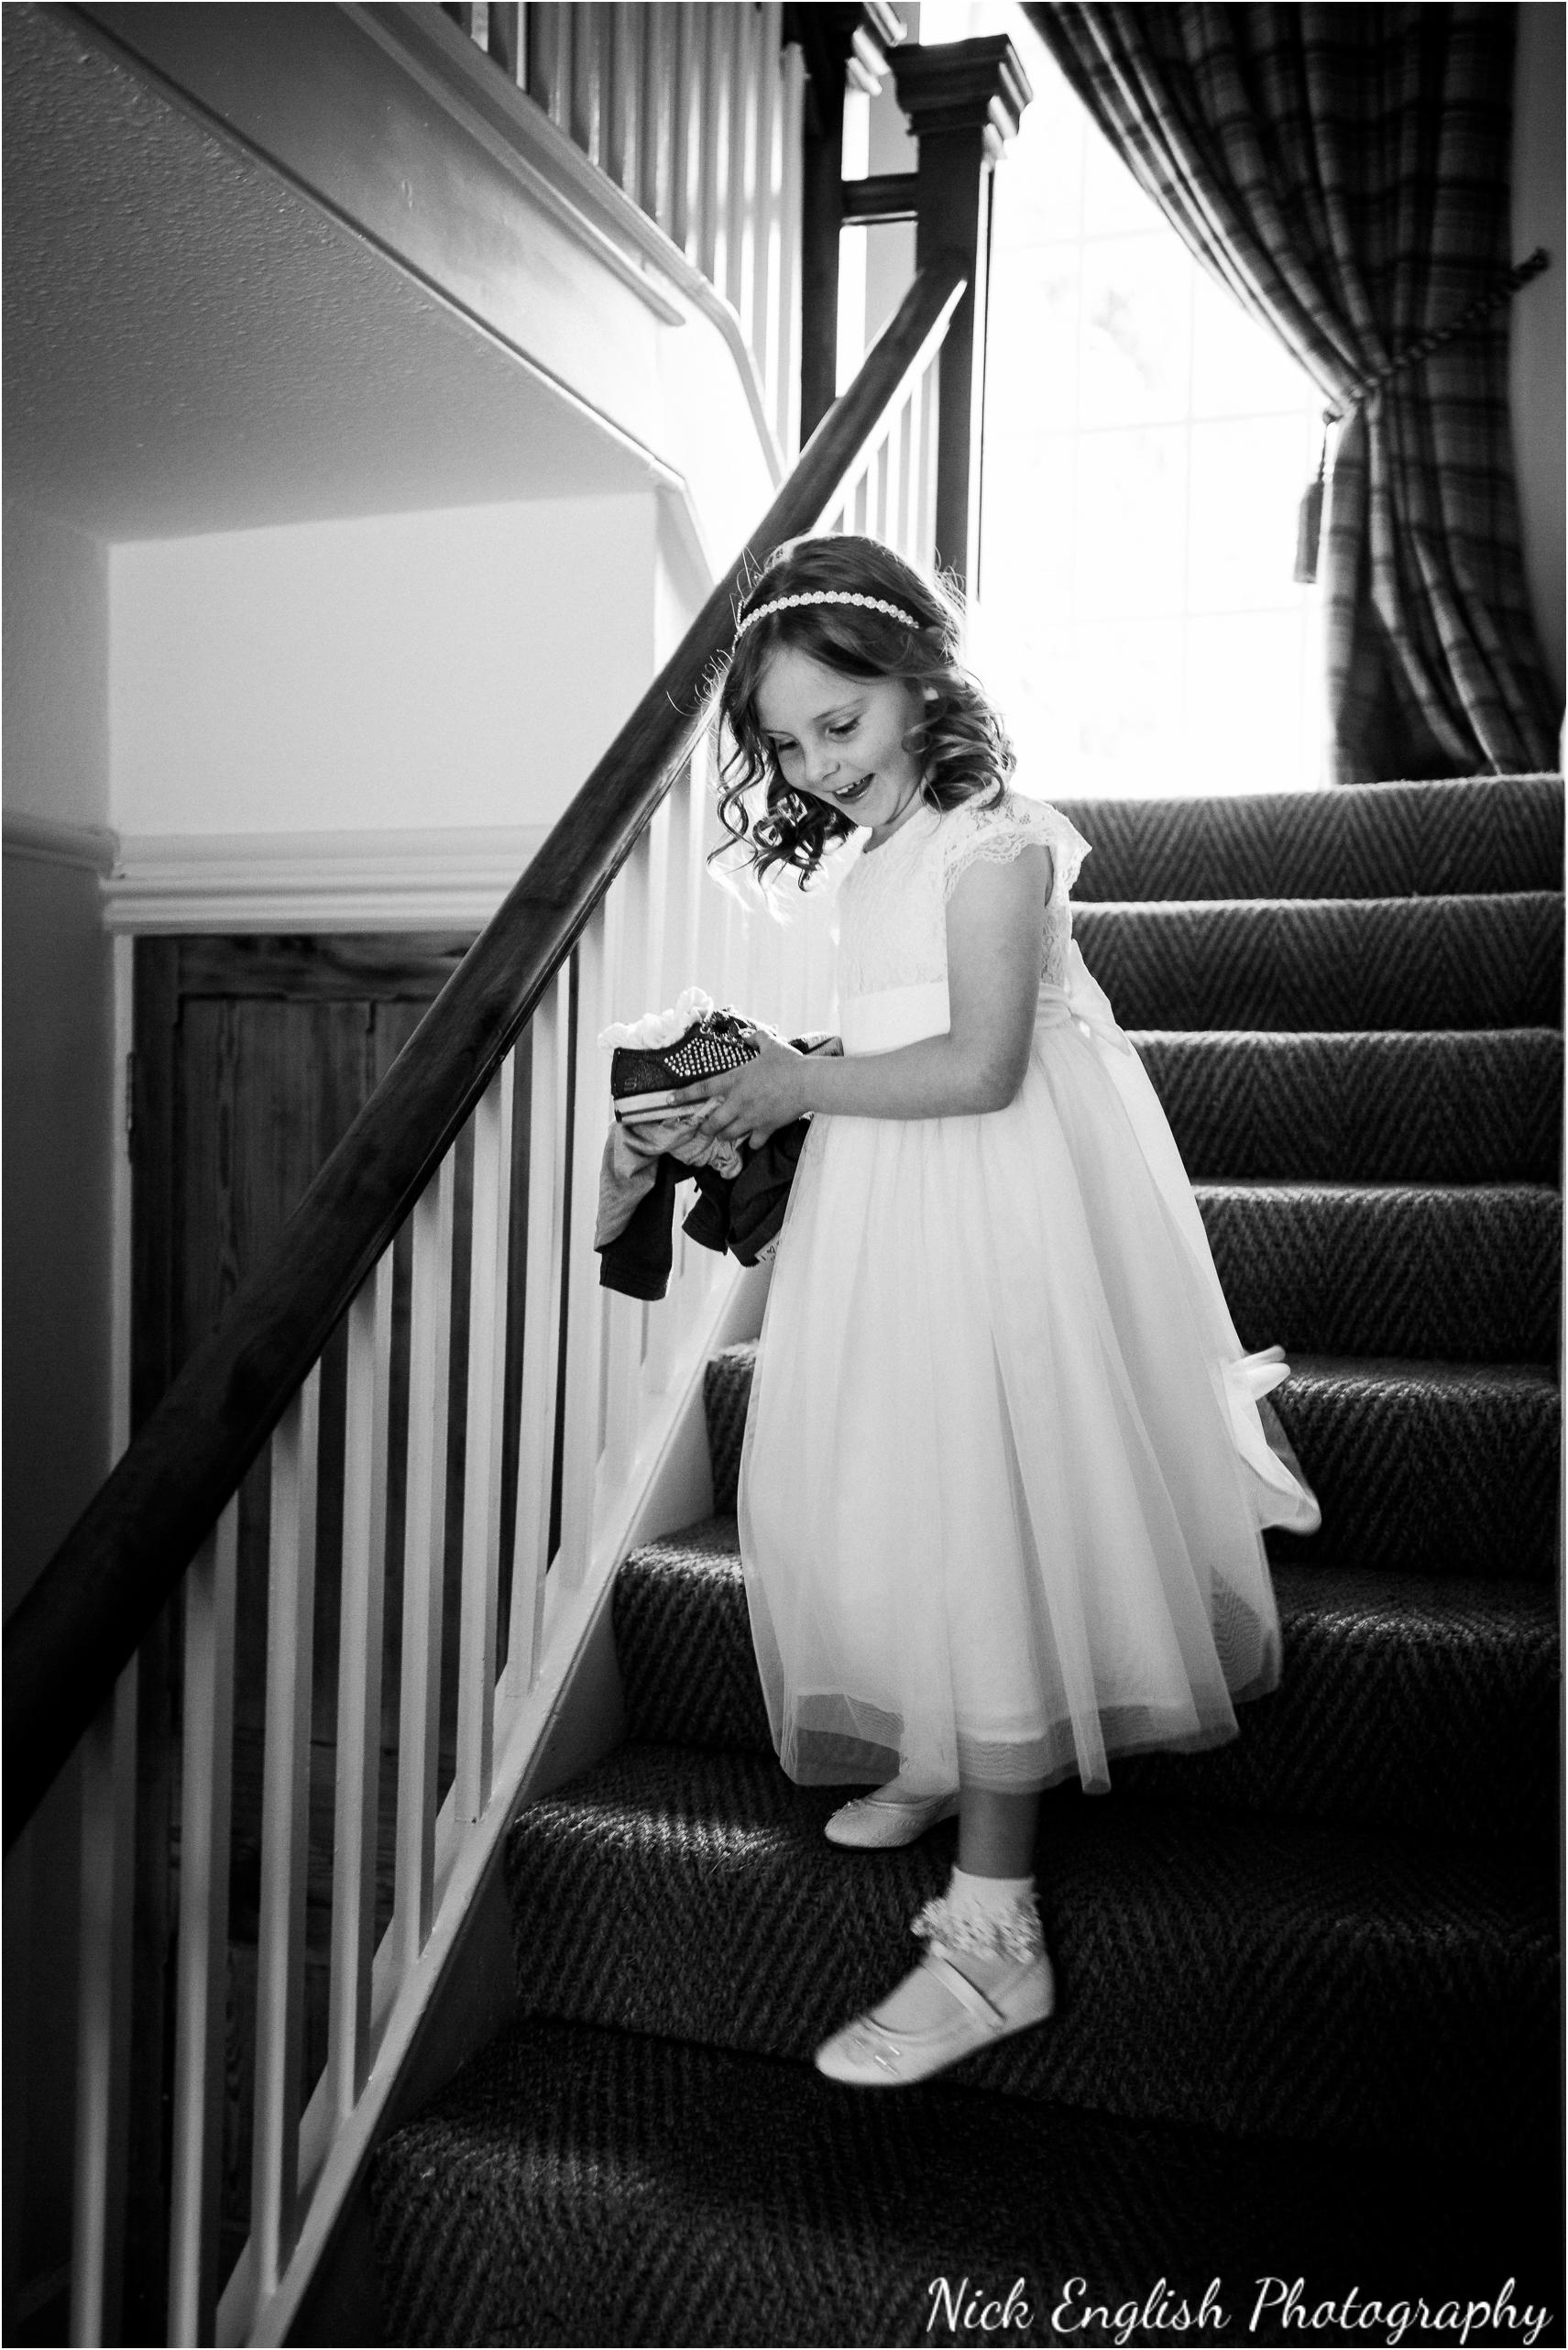 Alison James Wedding Photographs at Eaves Hall West Bradford 46jpg.jpeg